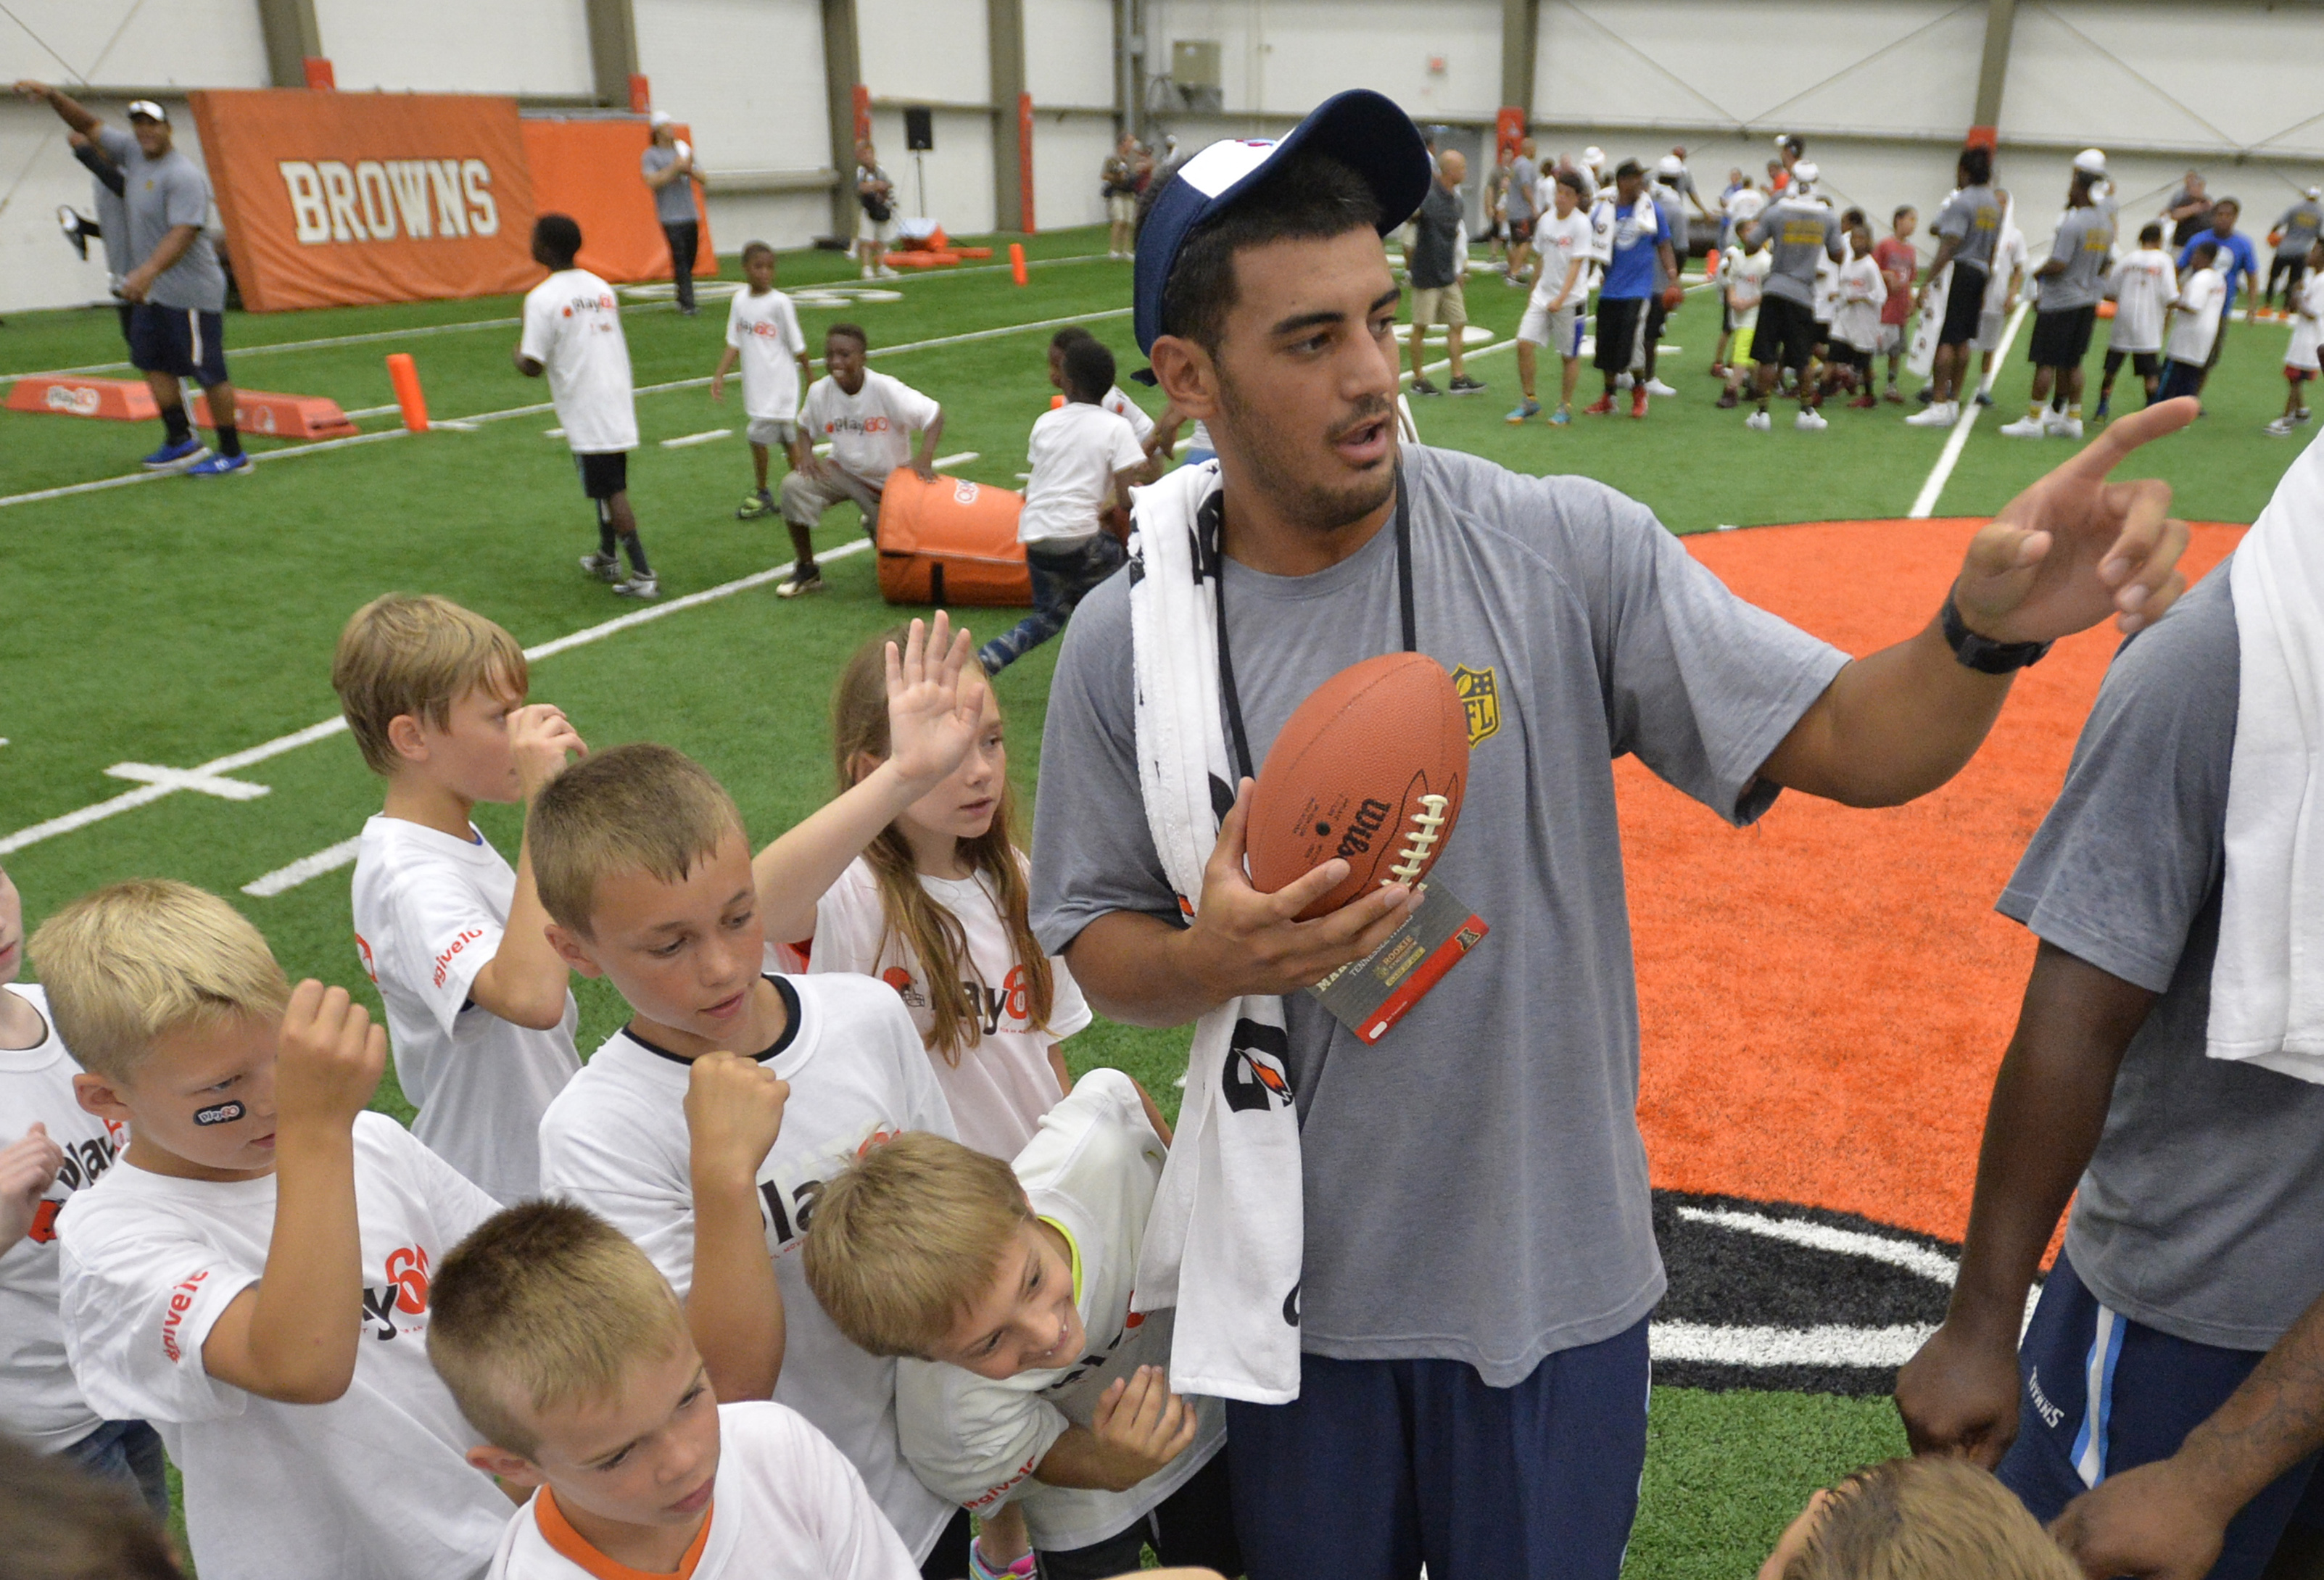 Tennessee Titans quarterback Marcus Mariota explains a football drill to students during the NFL Rookie Symposium in Berea, Ohio, Tuesday, June 23, 2015. (AP Photo/David Richard)